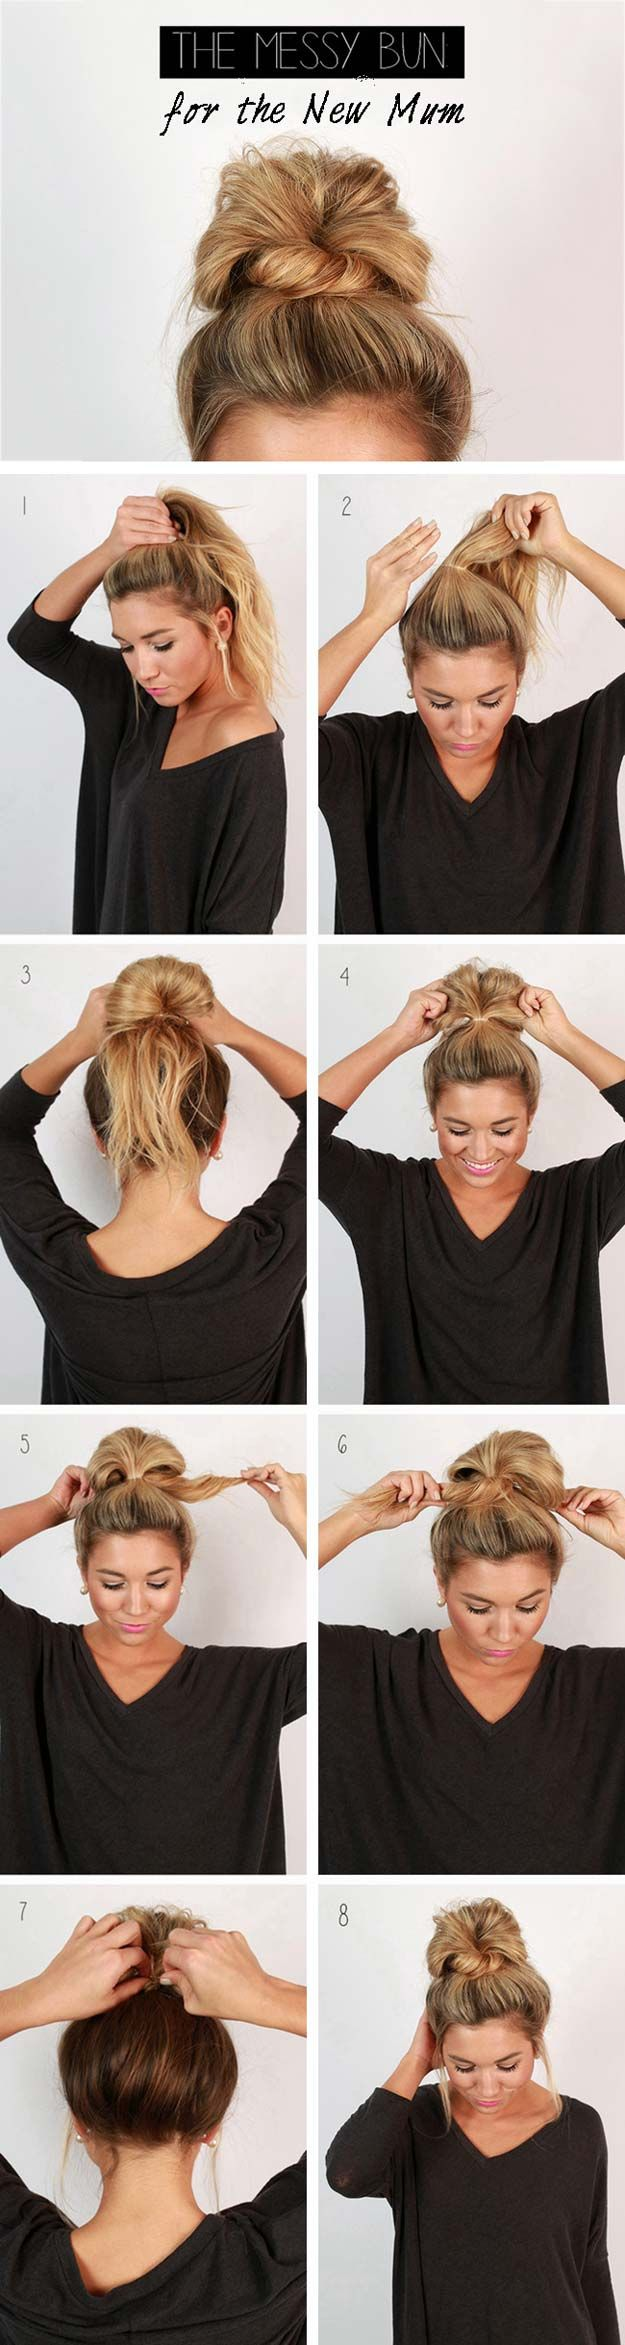 12 Cute and Easy Hairstyles that can be done in a few minutes